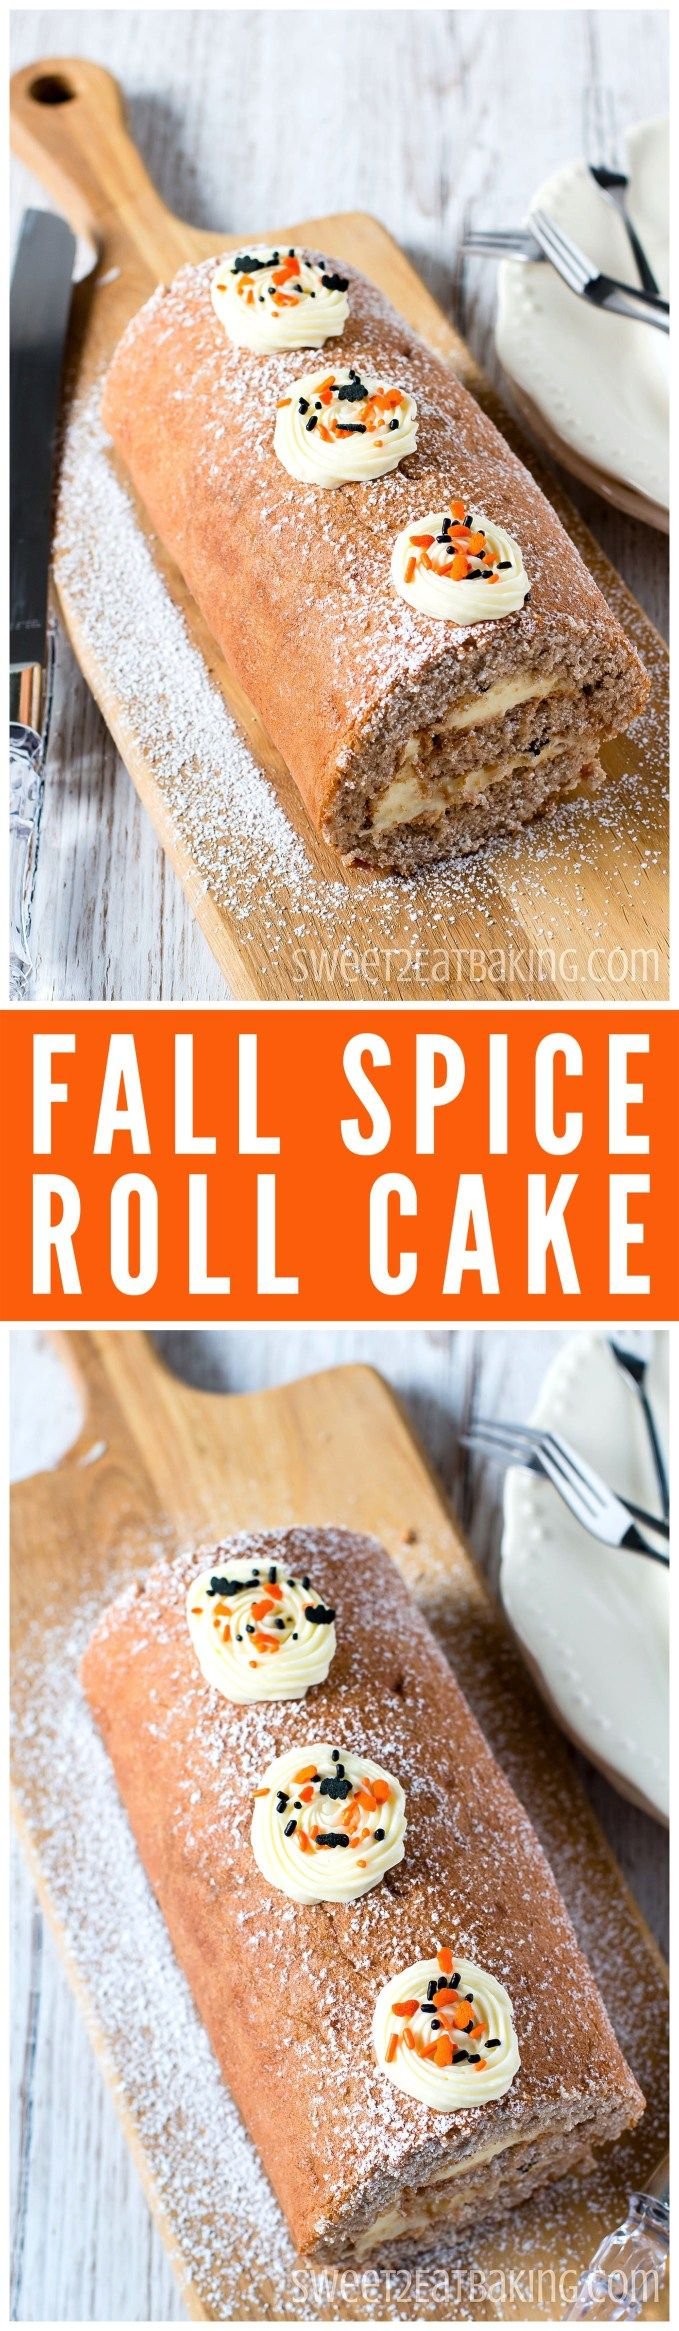 Halloween Fall Spice Swiss Cake Roll Roulade Recipe by Sweet2EatBaking.com | Delicately spiced with  cinnamon, nutmeg, ginger, allspice, cloves, and filled with a tangy cream cheese frosting. The perfect cake for a Fall or Halloween party. #cbias [ad]